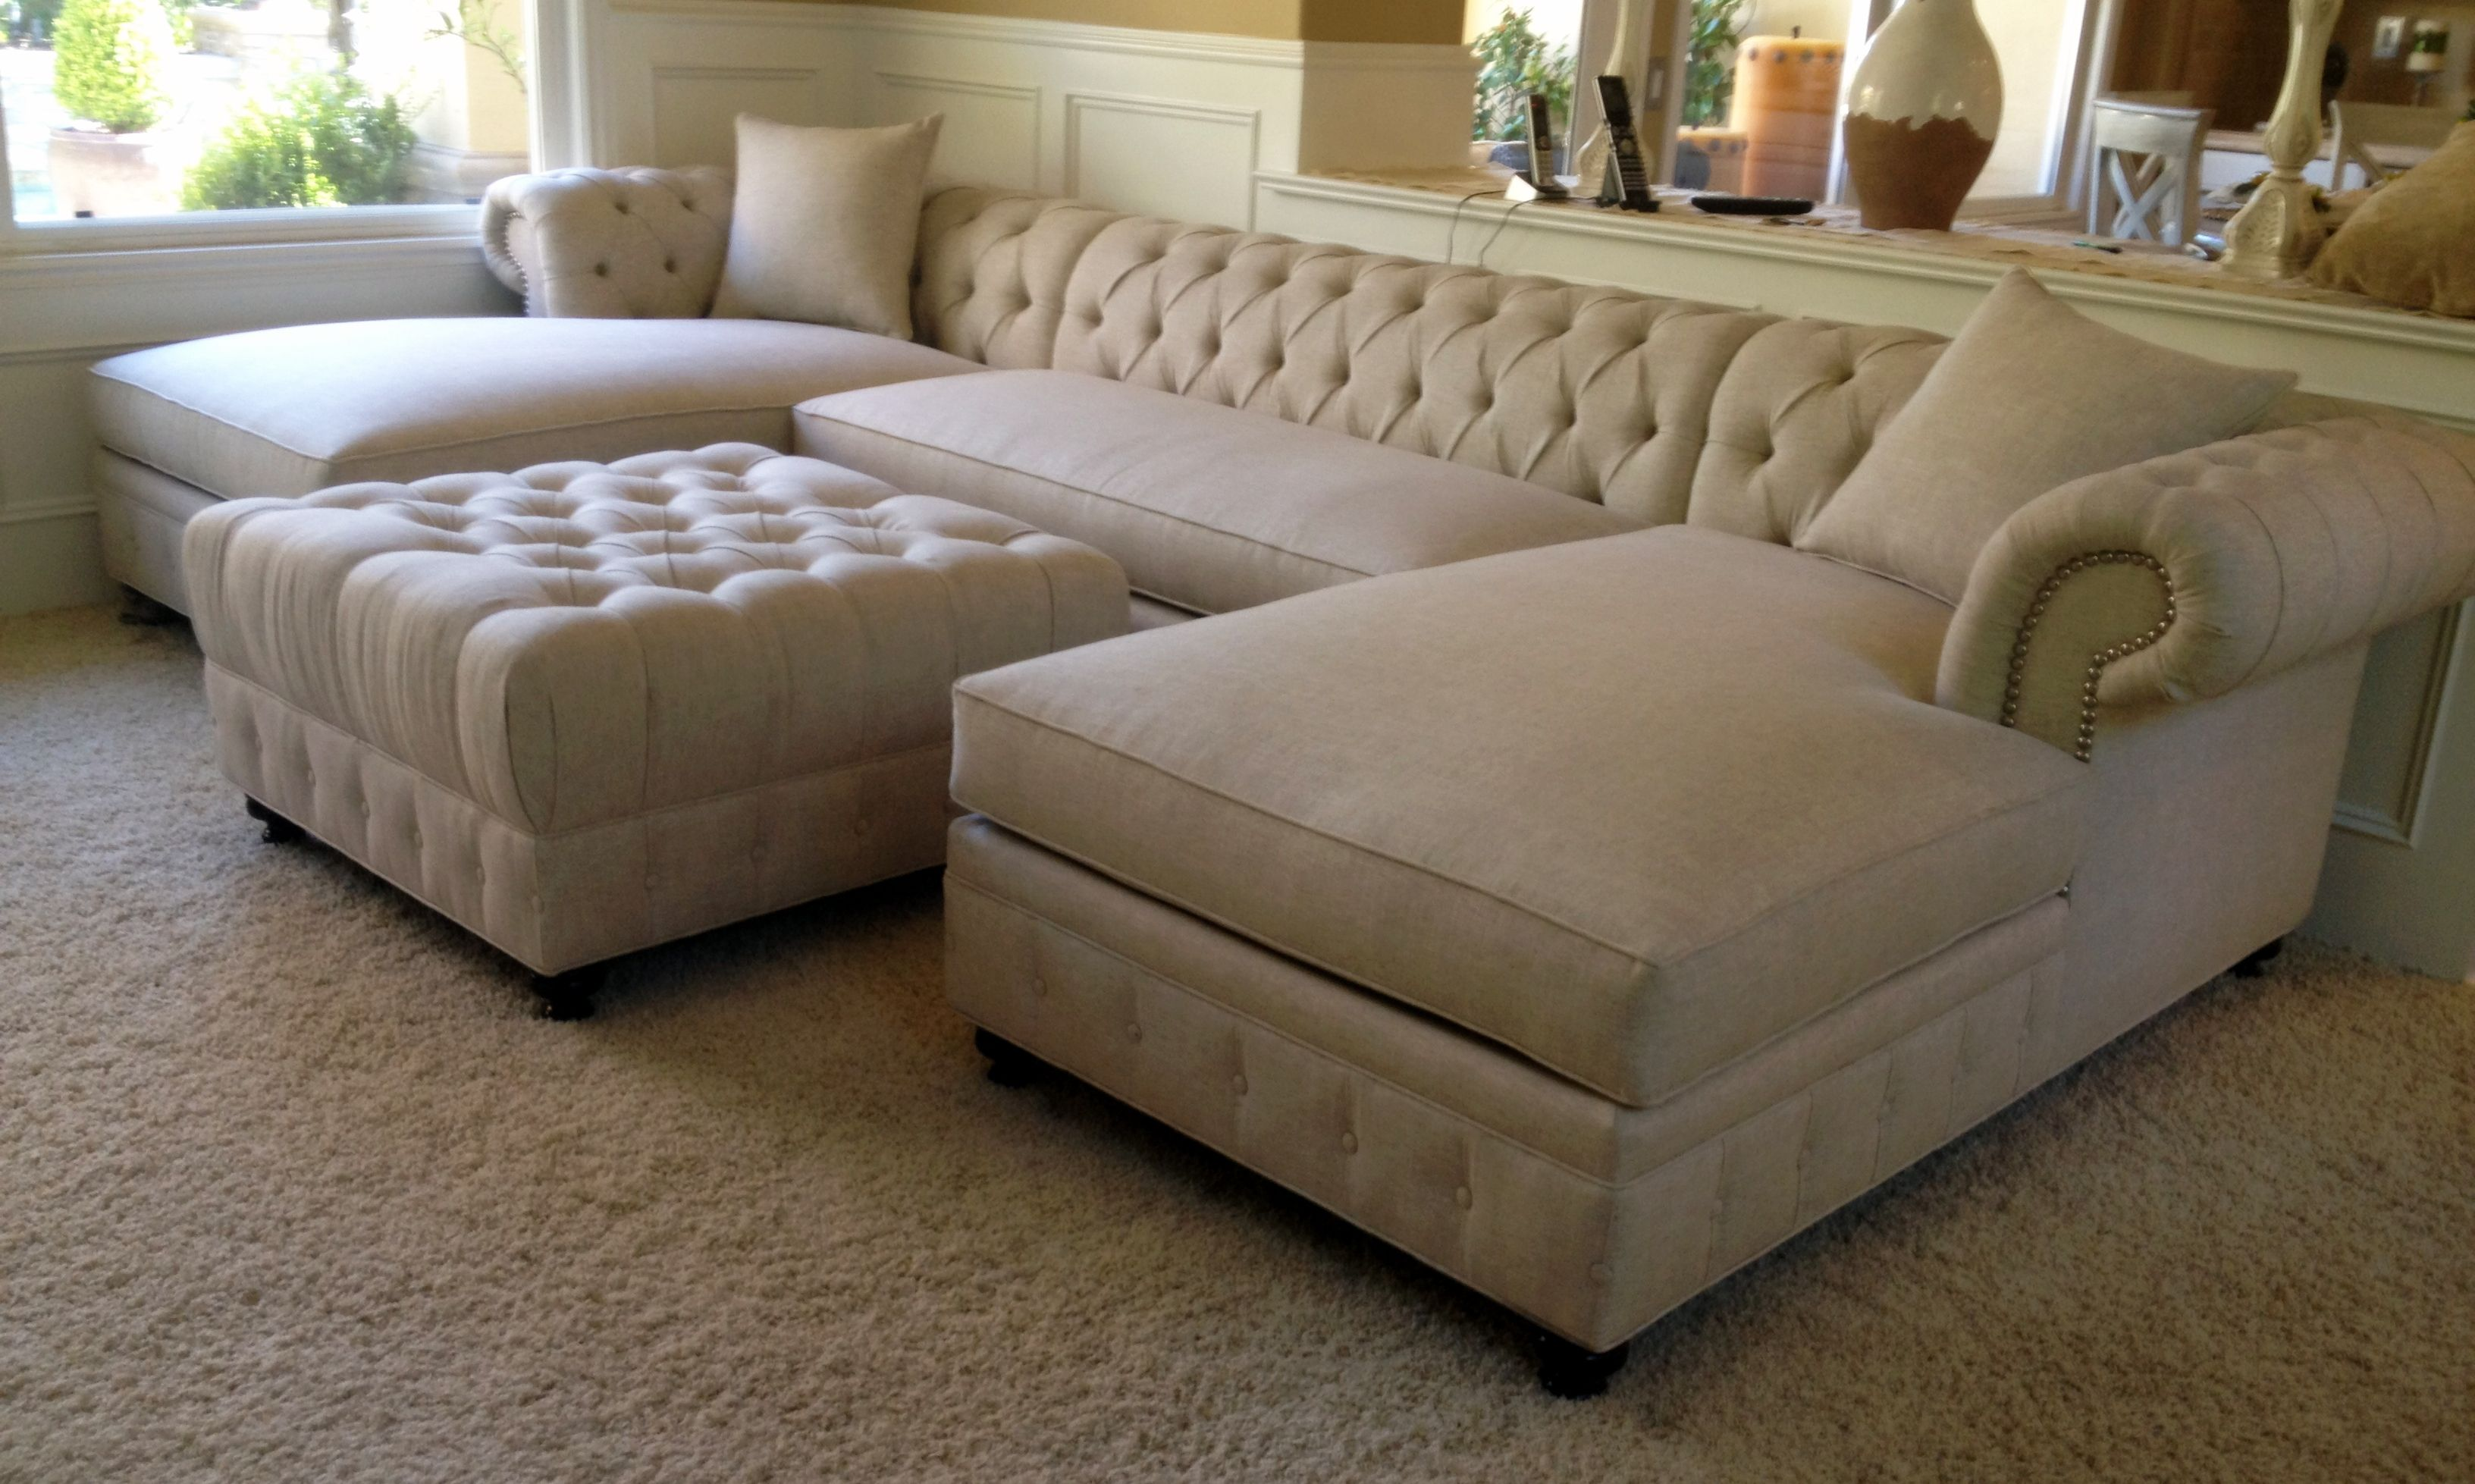 Custom Sectional Sofas Los Angeles Caramel Colored Leather Sofa Kenzie Style Chesterfield Or